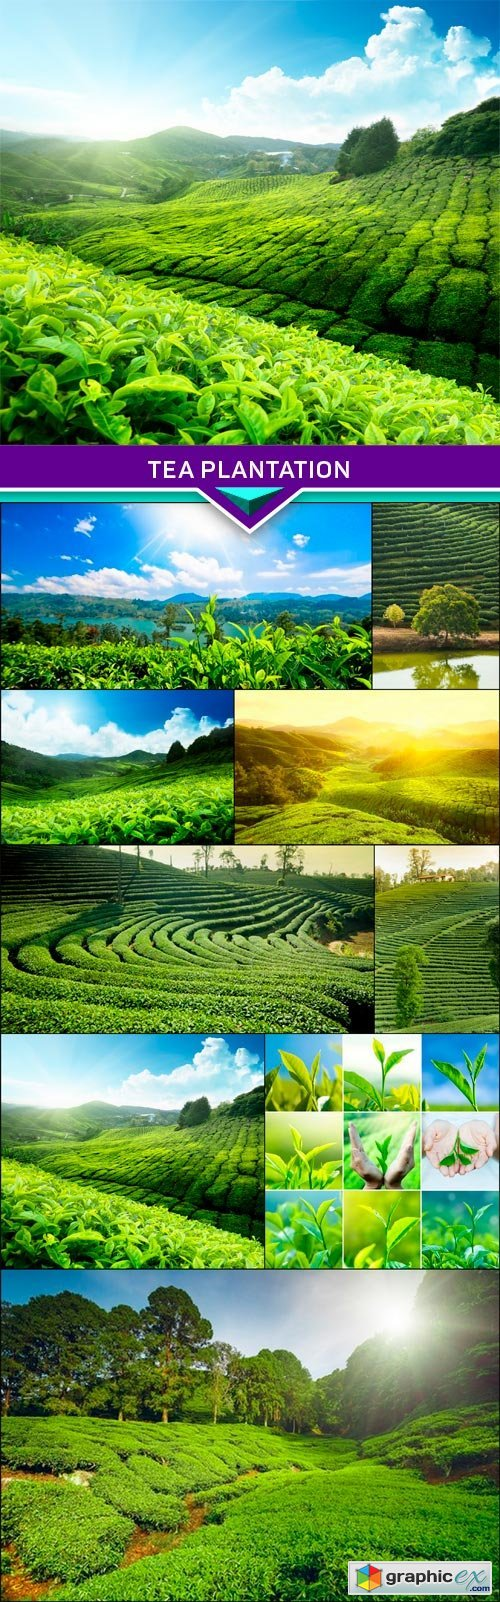 Tea plantation 10x JPEG